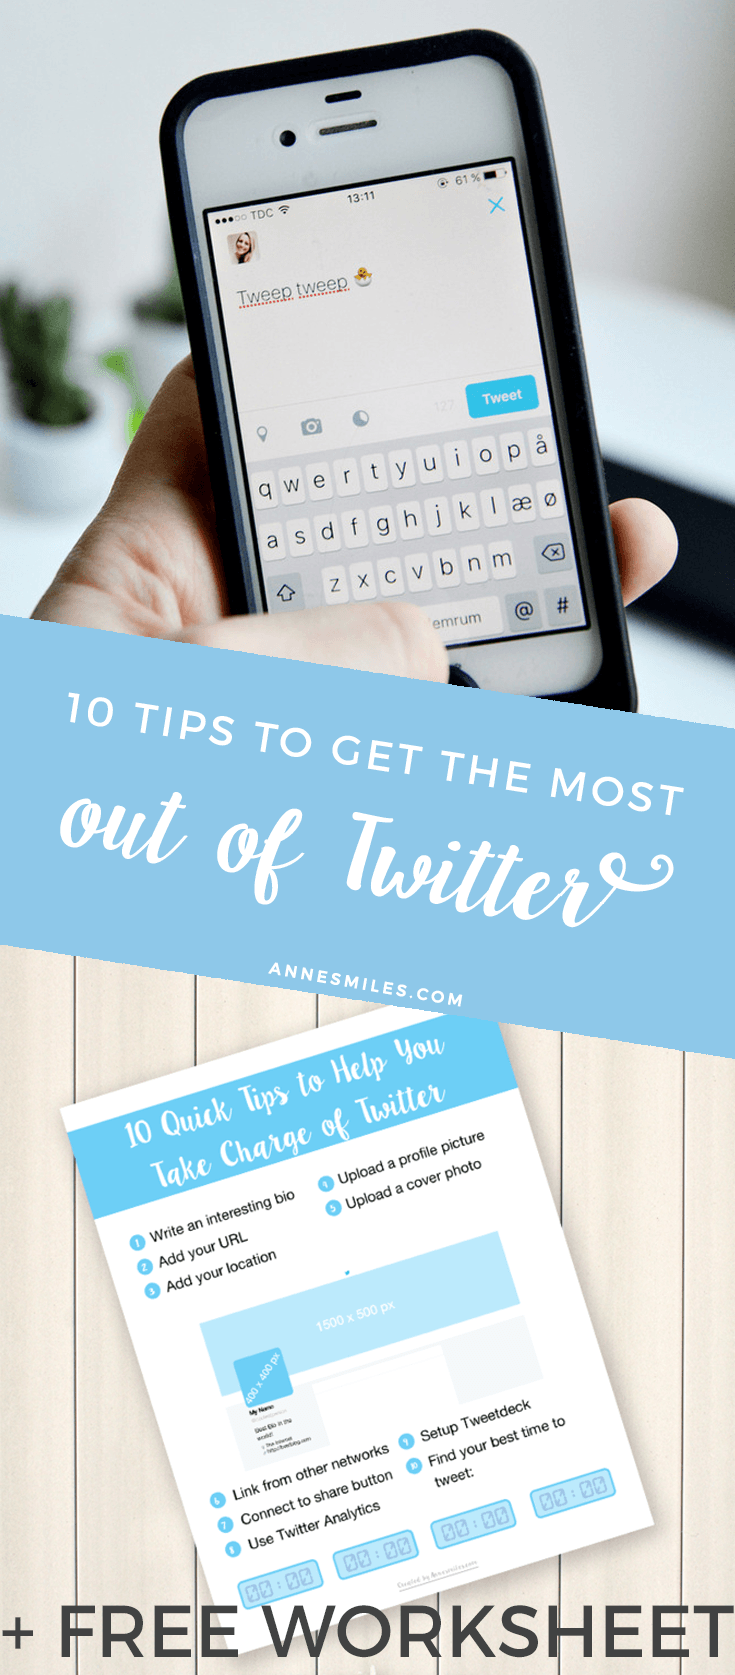 10 Quick Tips to Help You Take Charge of Twitter (+ Free Checklist)